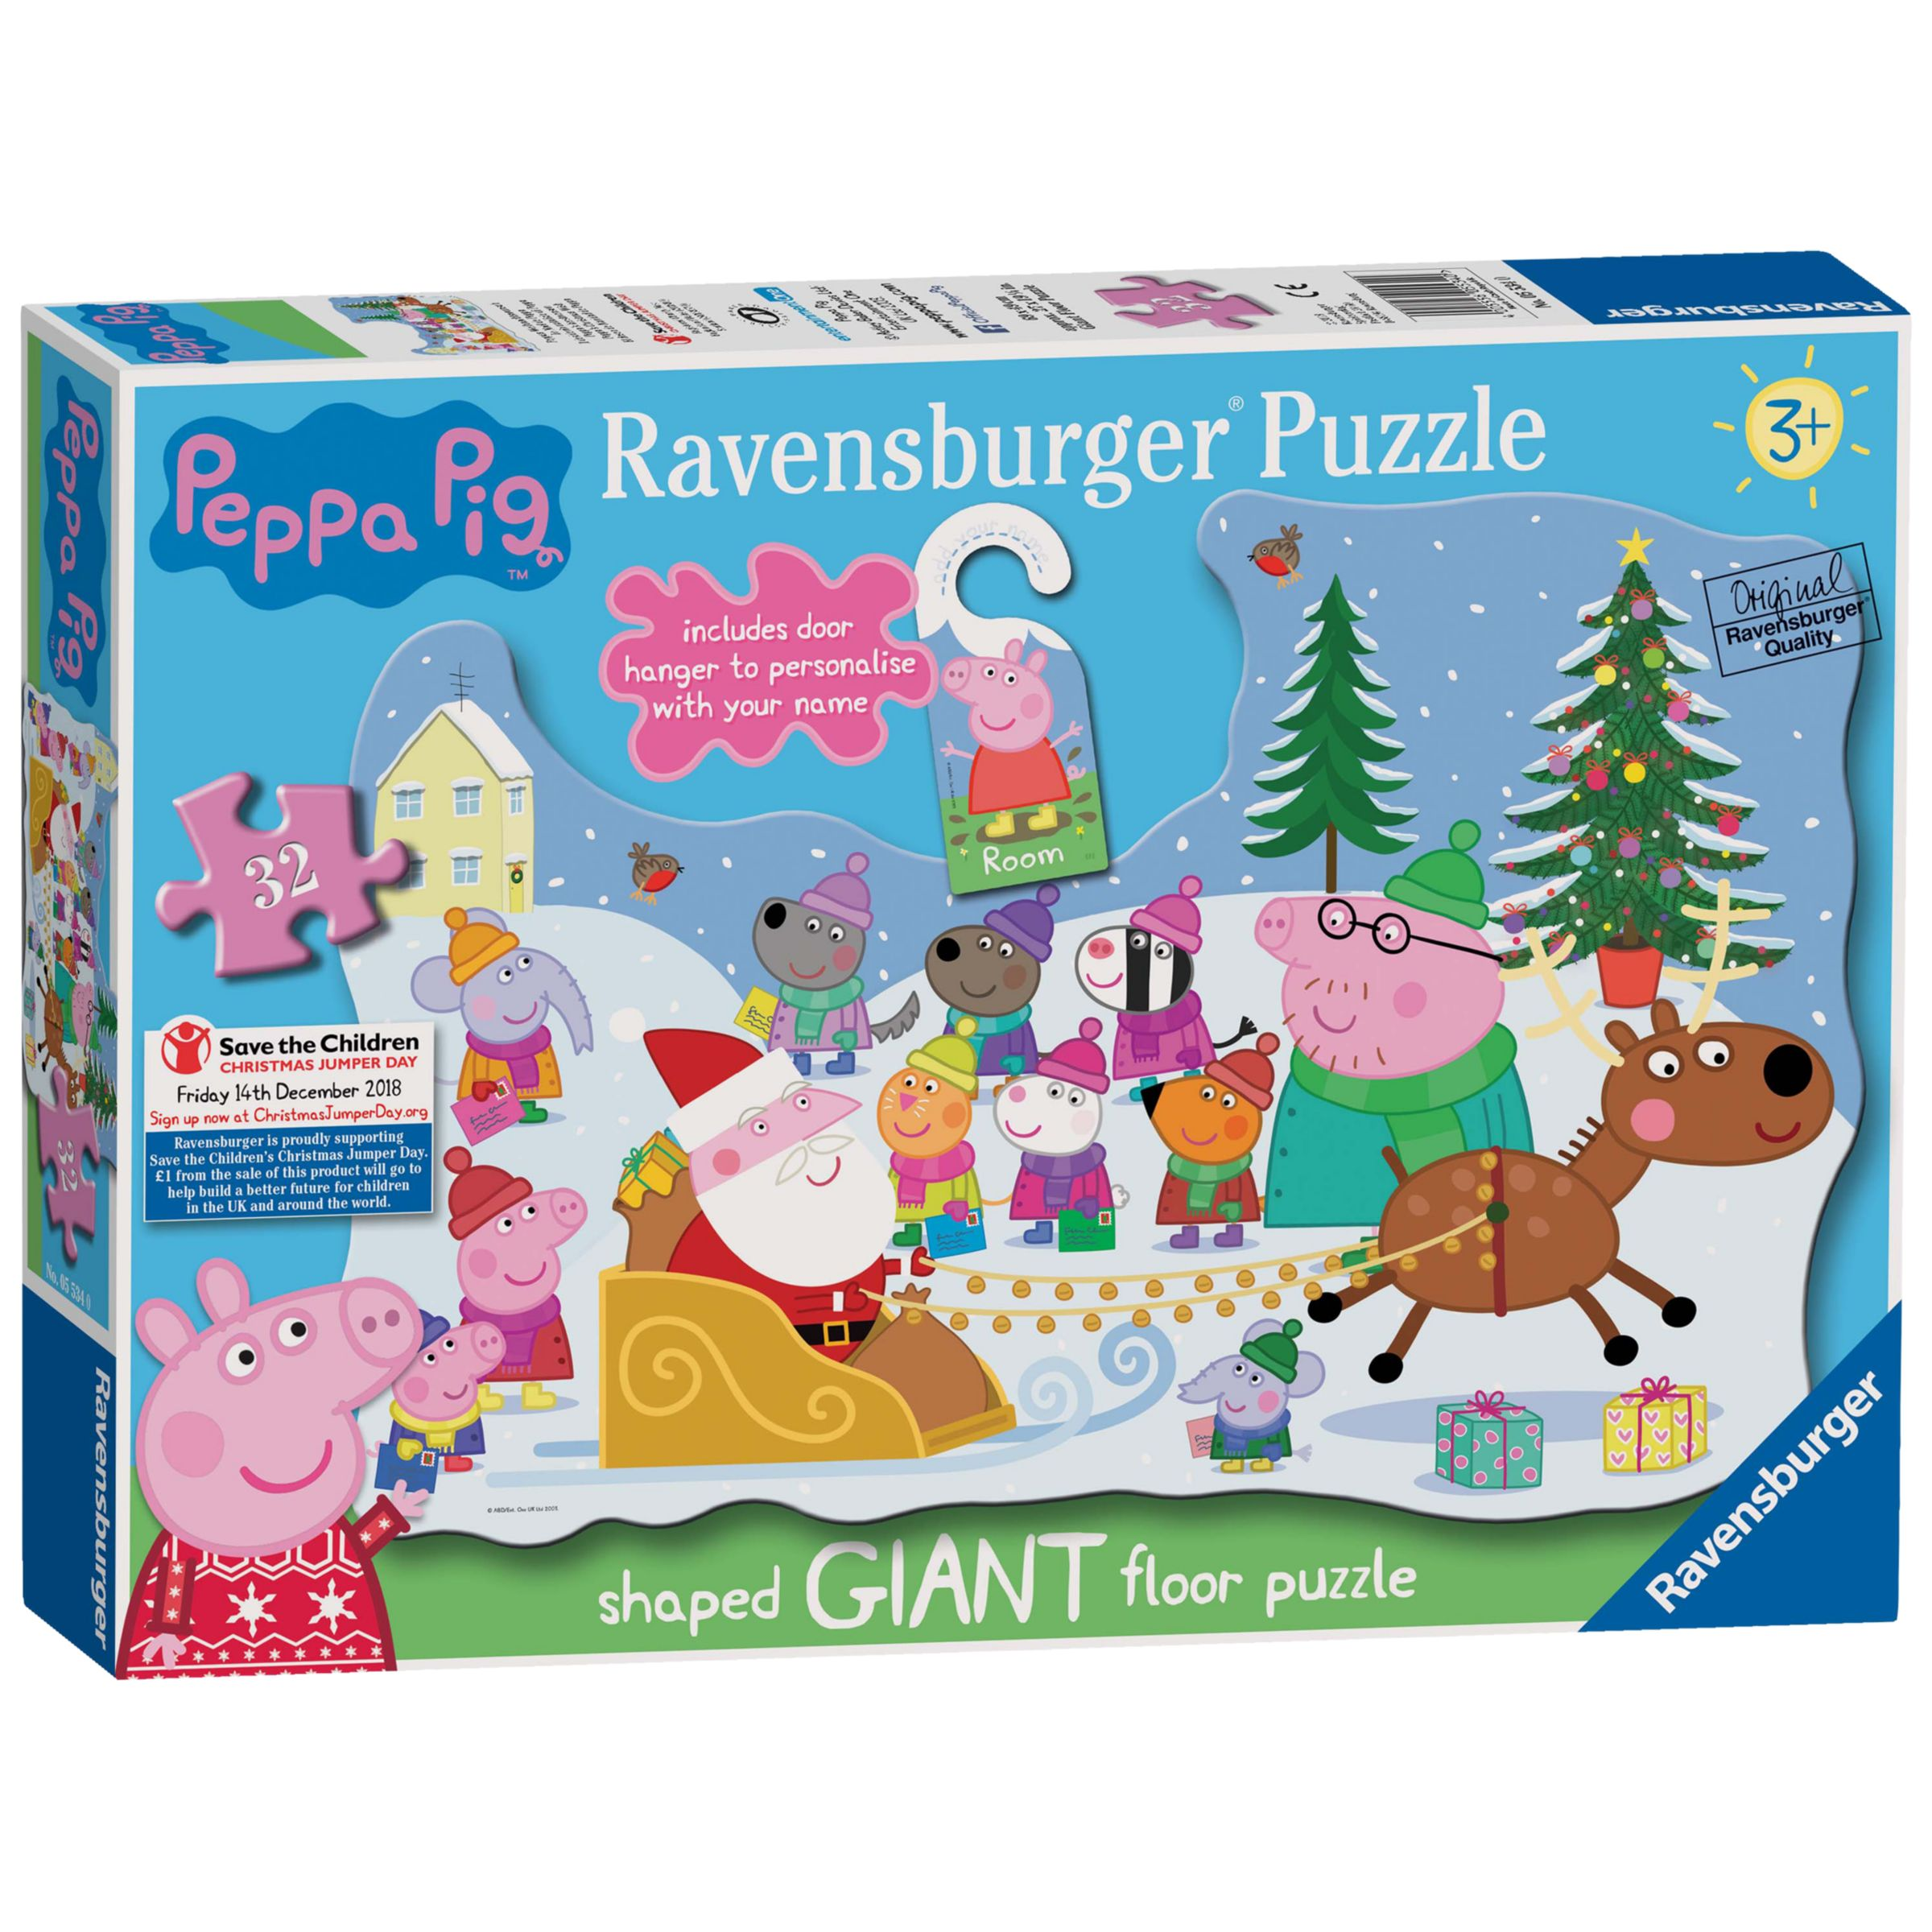 Peppa Pig Ravensburger Peppa Pig Christmas Floor Jigsaw Puzzle, 32 Pieces